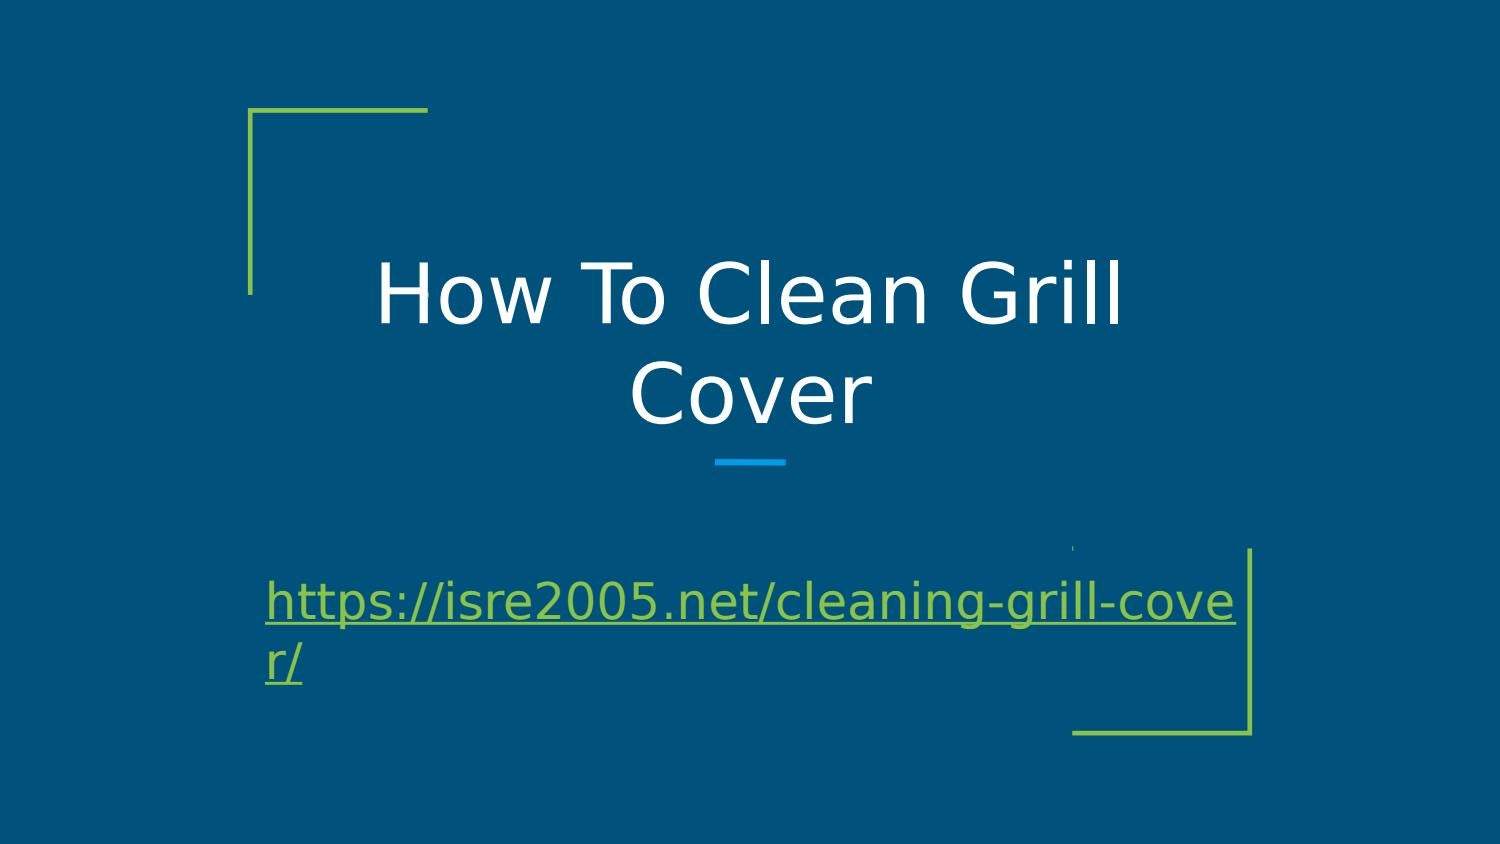 How To Clean Dirty Outdoor Barbecue Cover